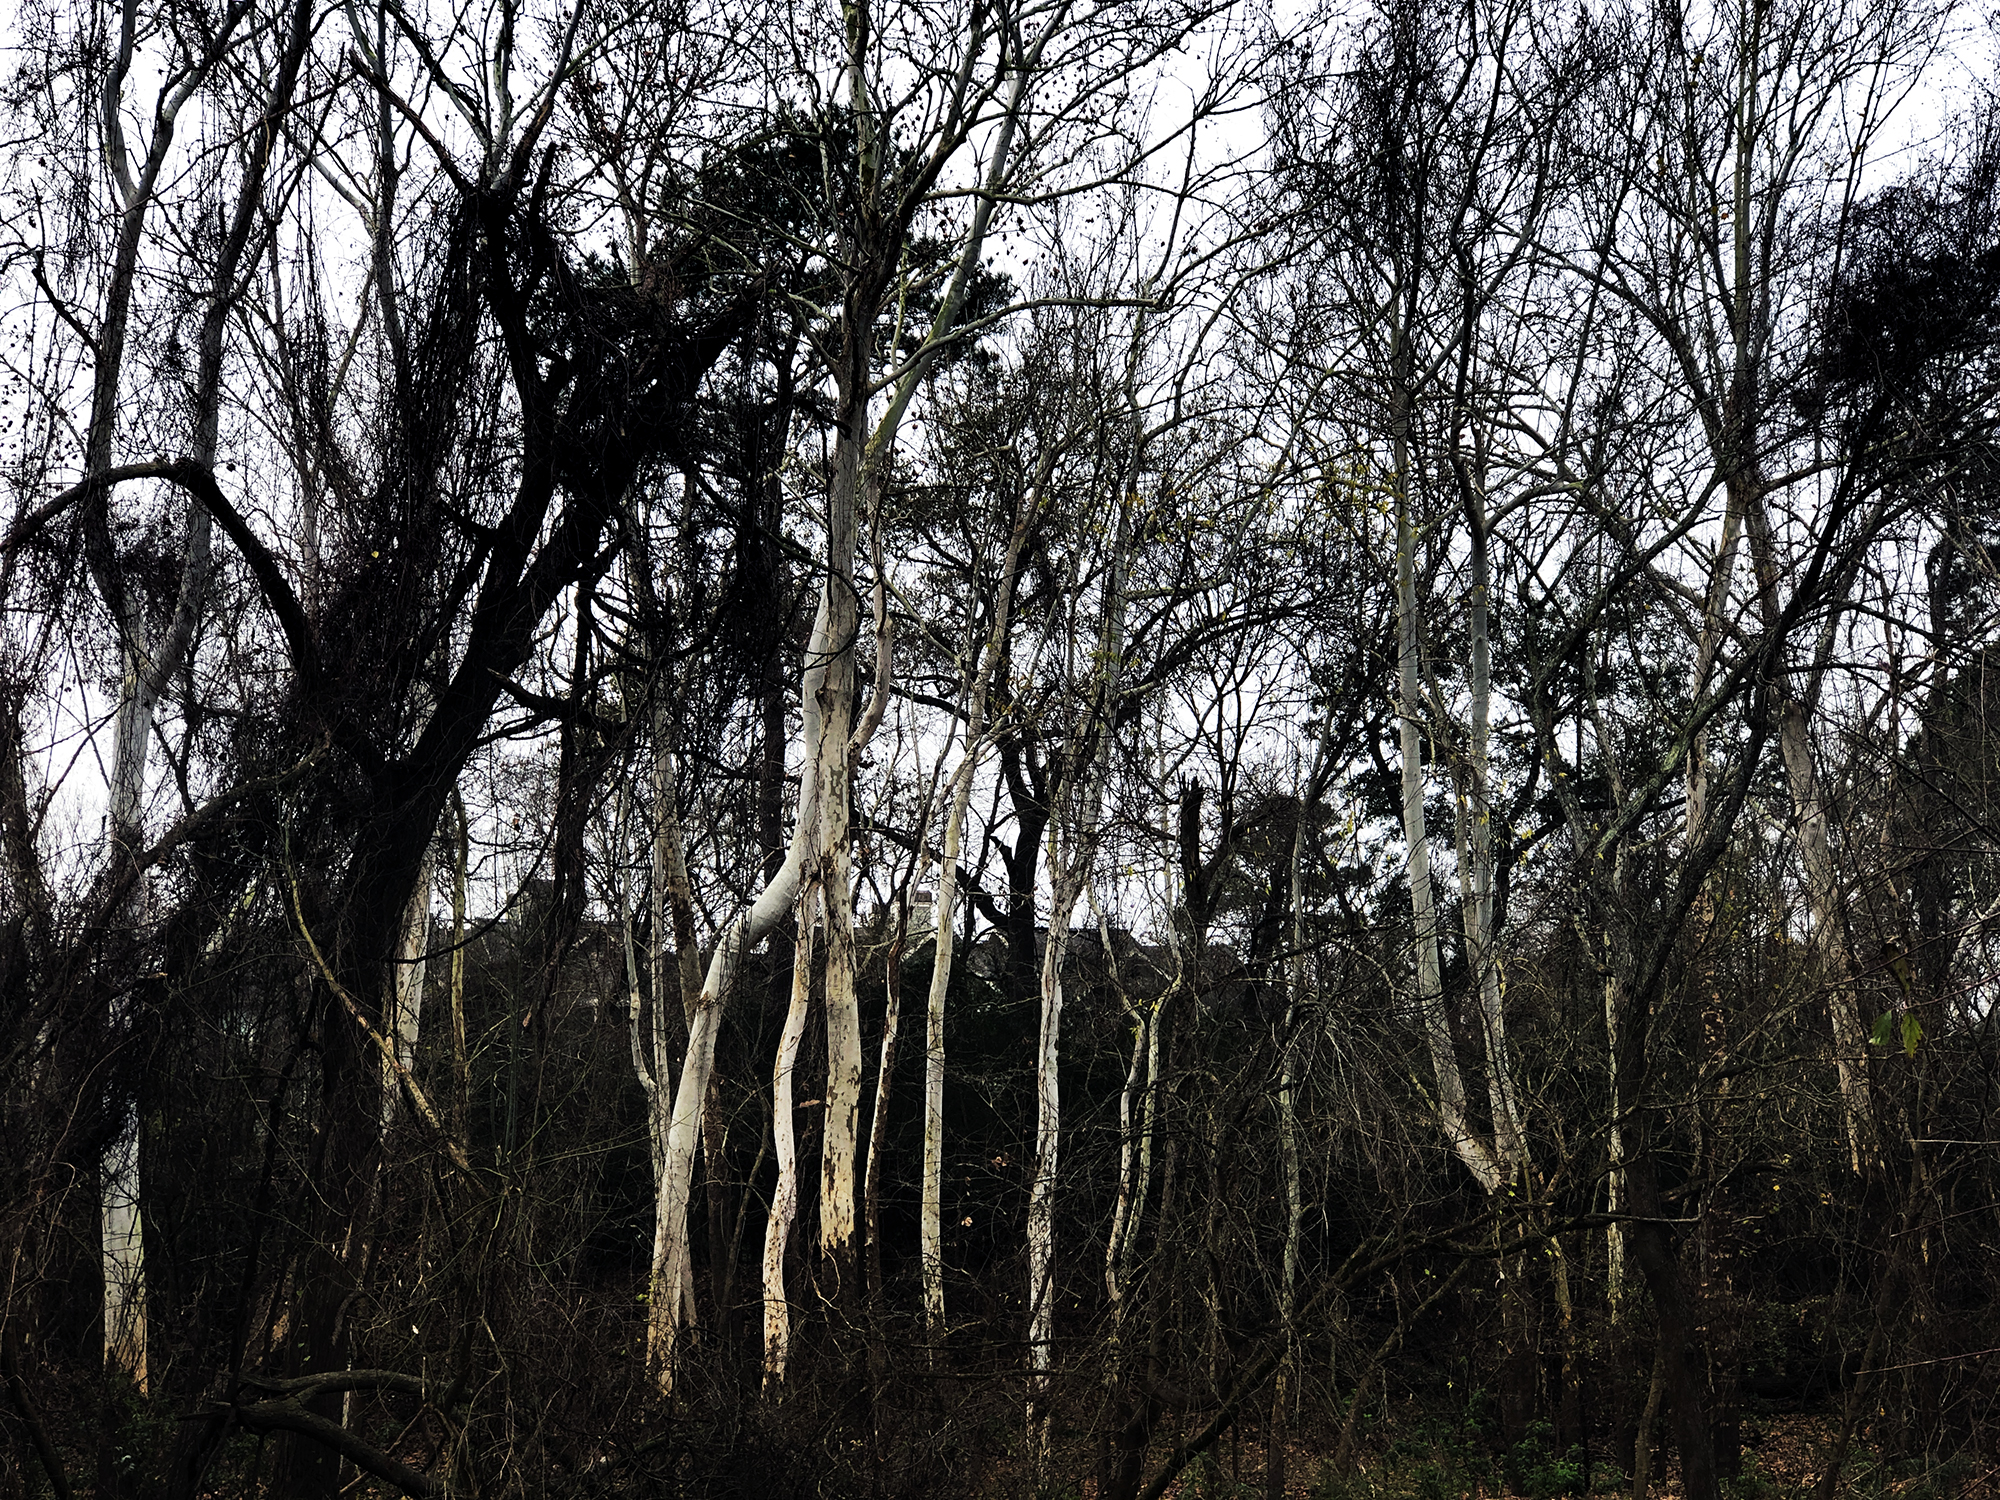 A walk in the woods, Wednesday, January 16, 2019.